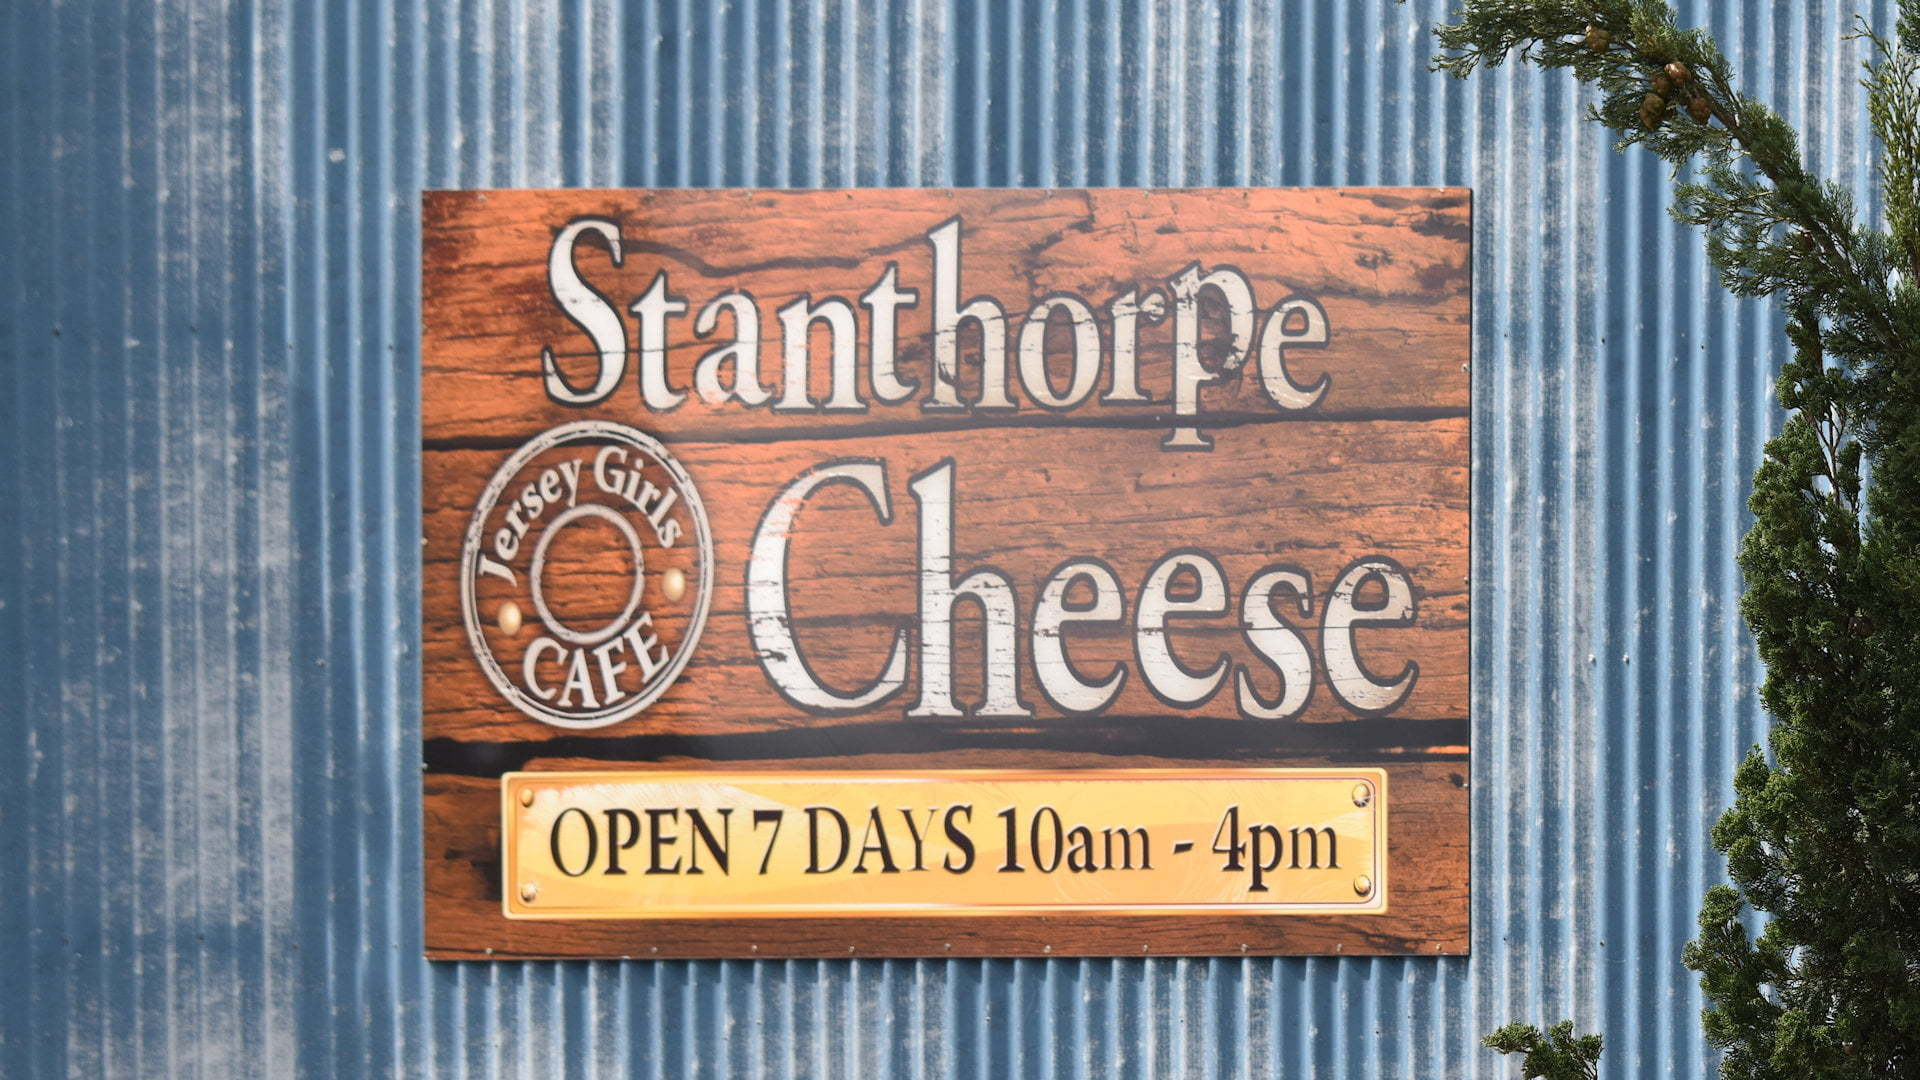 Sign for Stanthorpe Cheese, open 7 days 10am-4pm, Jersey Girls Cafe, on a blue corrugated iron background